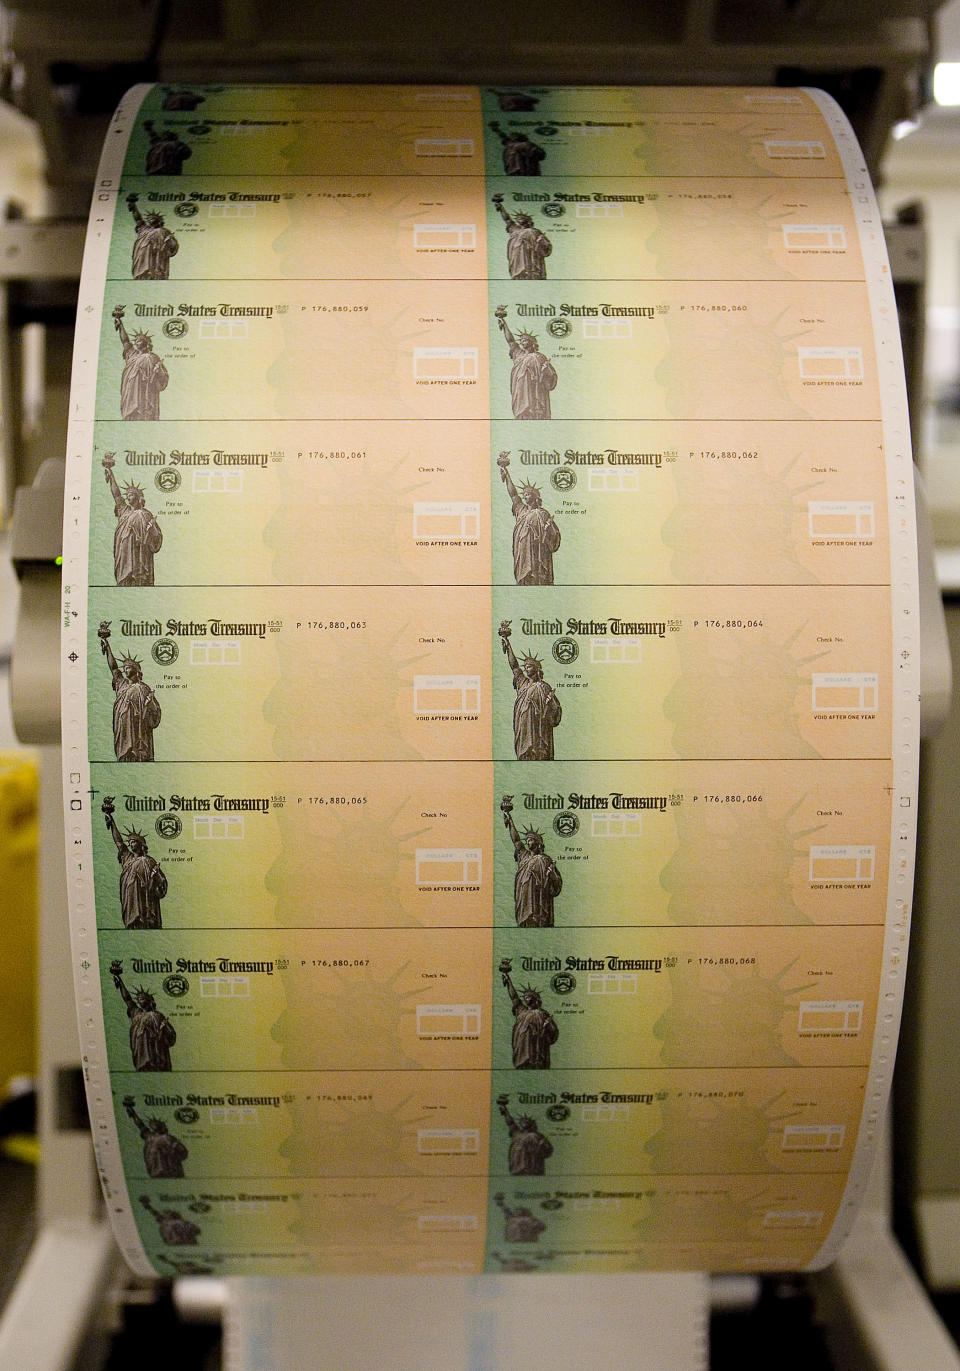 PHILADELPHIA - MAY 8:  Economic stimulus checks are prepared for printing at the Philadelphia Financial Center May 8, 2008 in Philadelphia, Pennsylvania. One hundred and thirty million households are eligible to receive a tax rebate check under the $168 billion economic stimulus plan.  (Photo by Jeff Fusco/Getty Images)